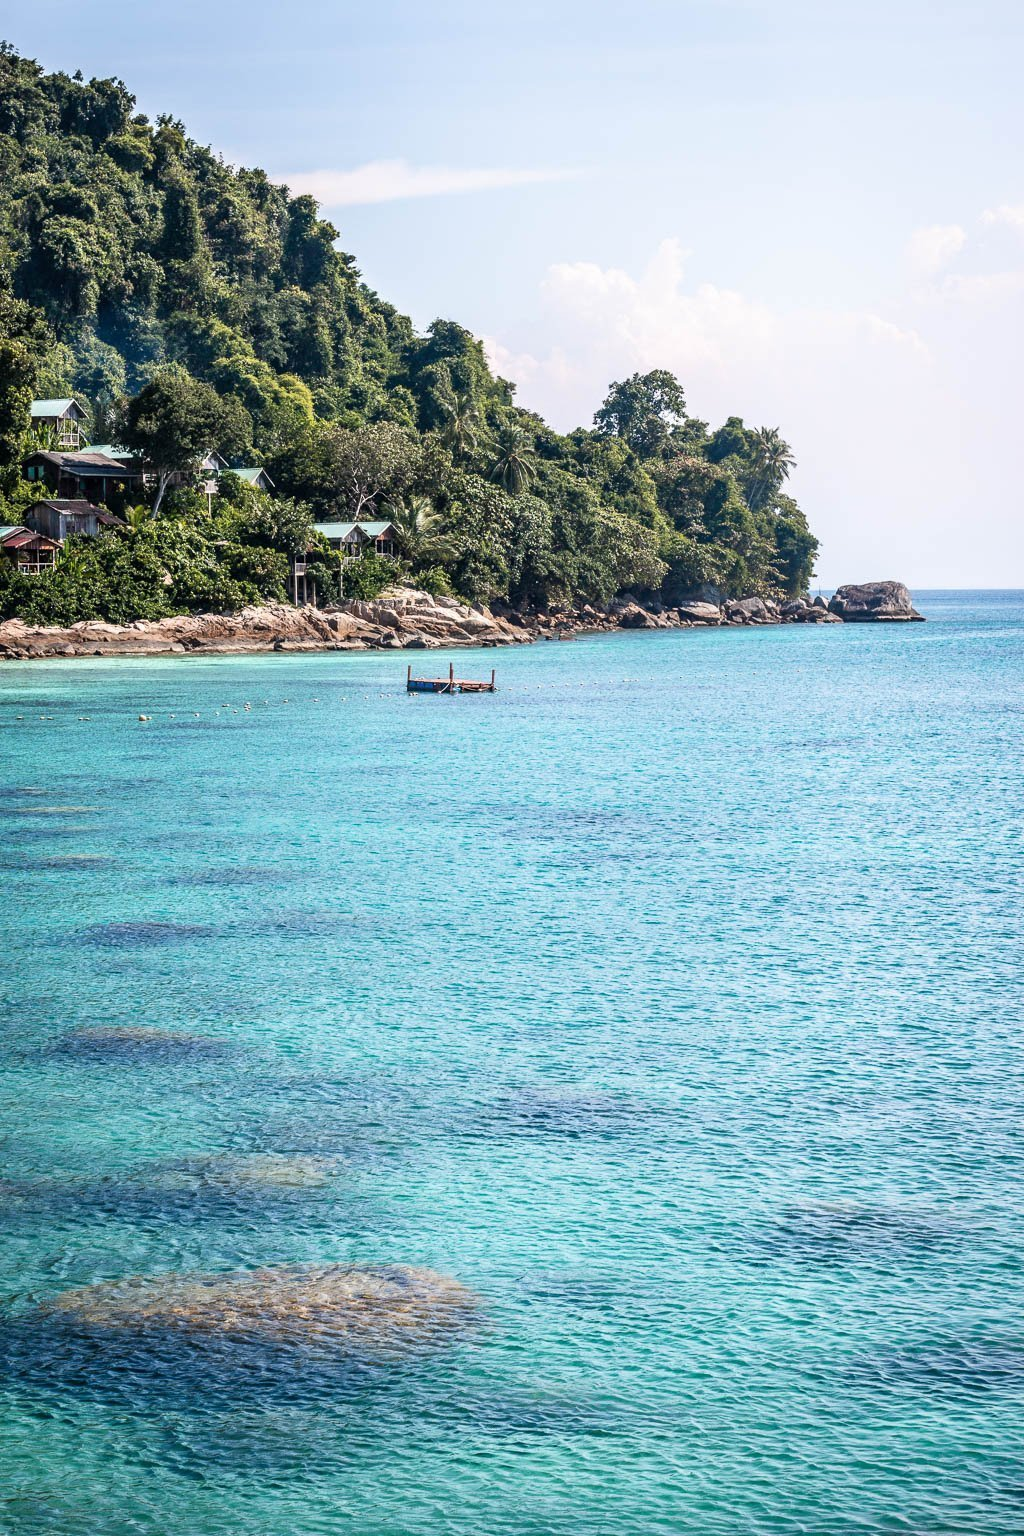 The blue waters around the Perhentian Islands, Malaysia.